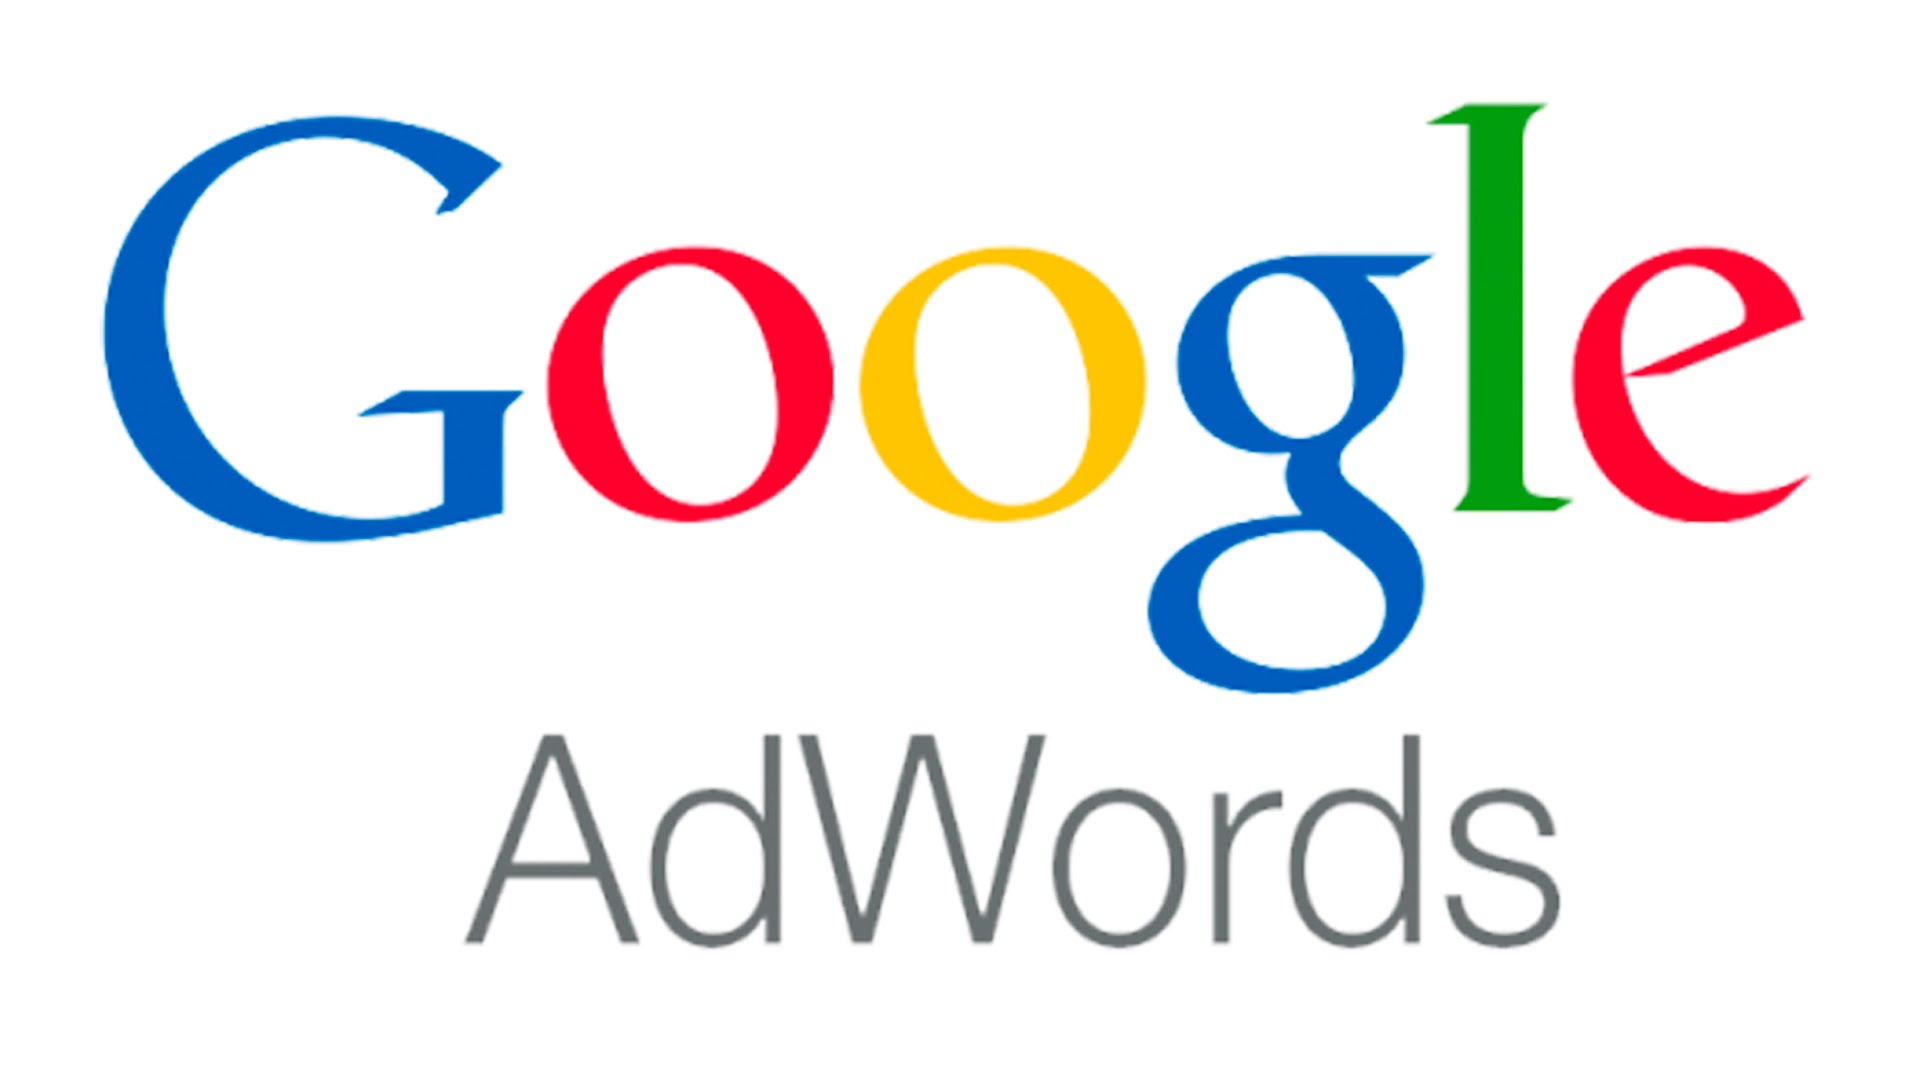 deliver the Answer for Google Adwords Exams and Clear the Exams on behalf